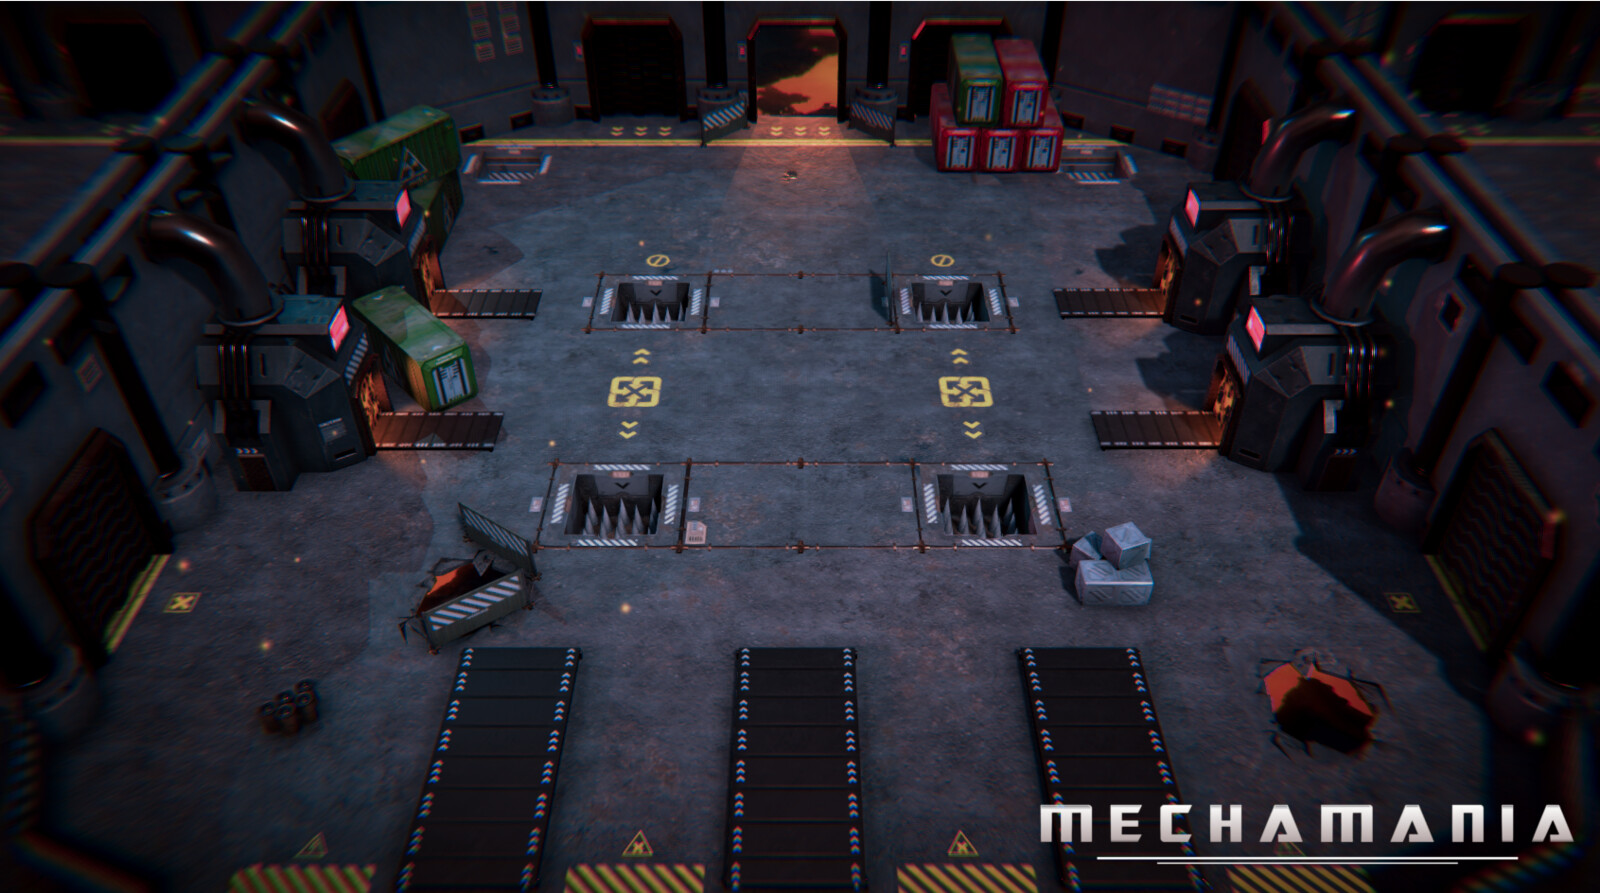 Level 3: Factory. Spike pits, moving walkways and furnaces provide unique challenges.